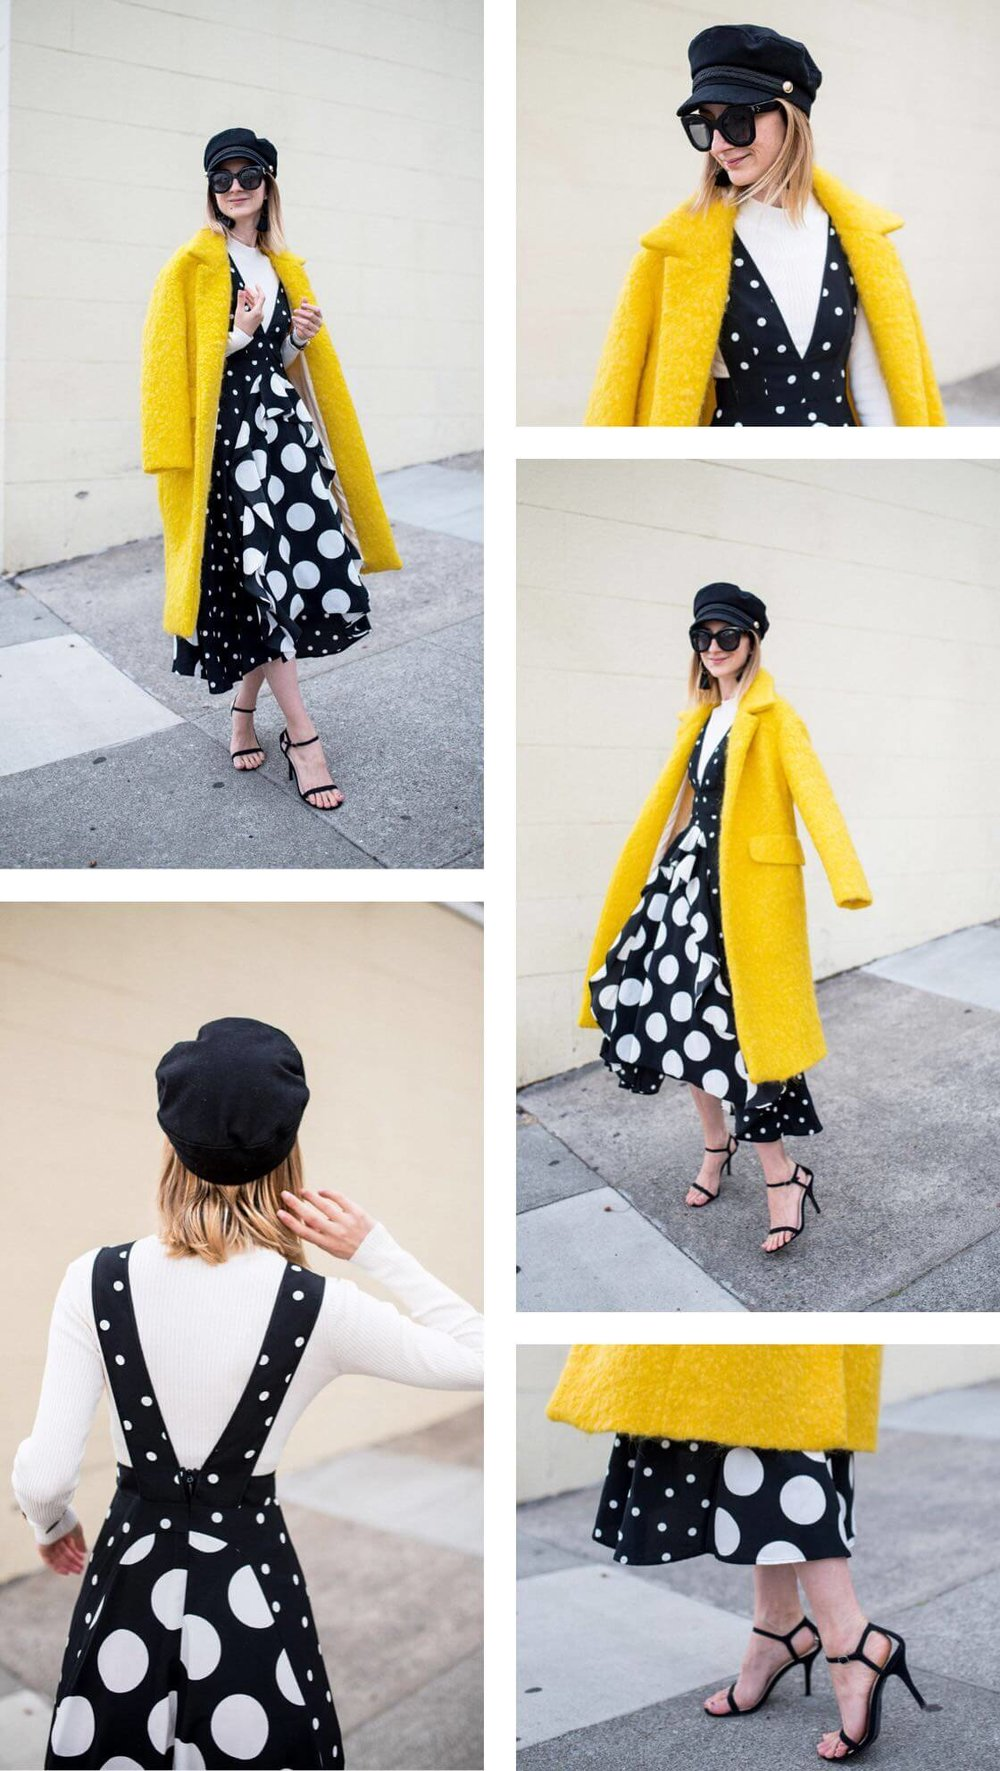 Black-White-Polkadot-Dress-Yellow-WoolCoat.JPG